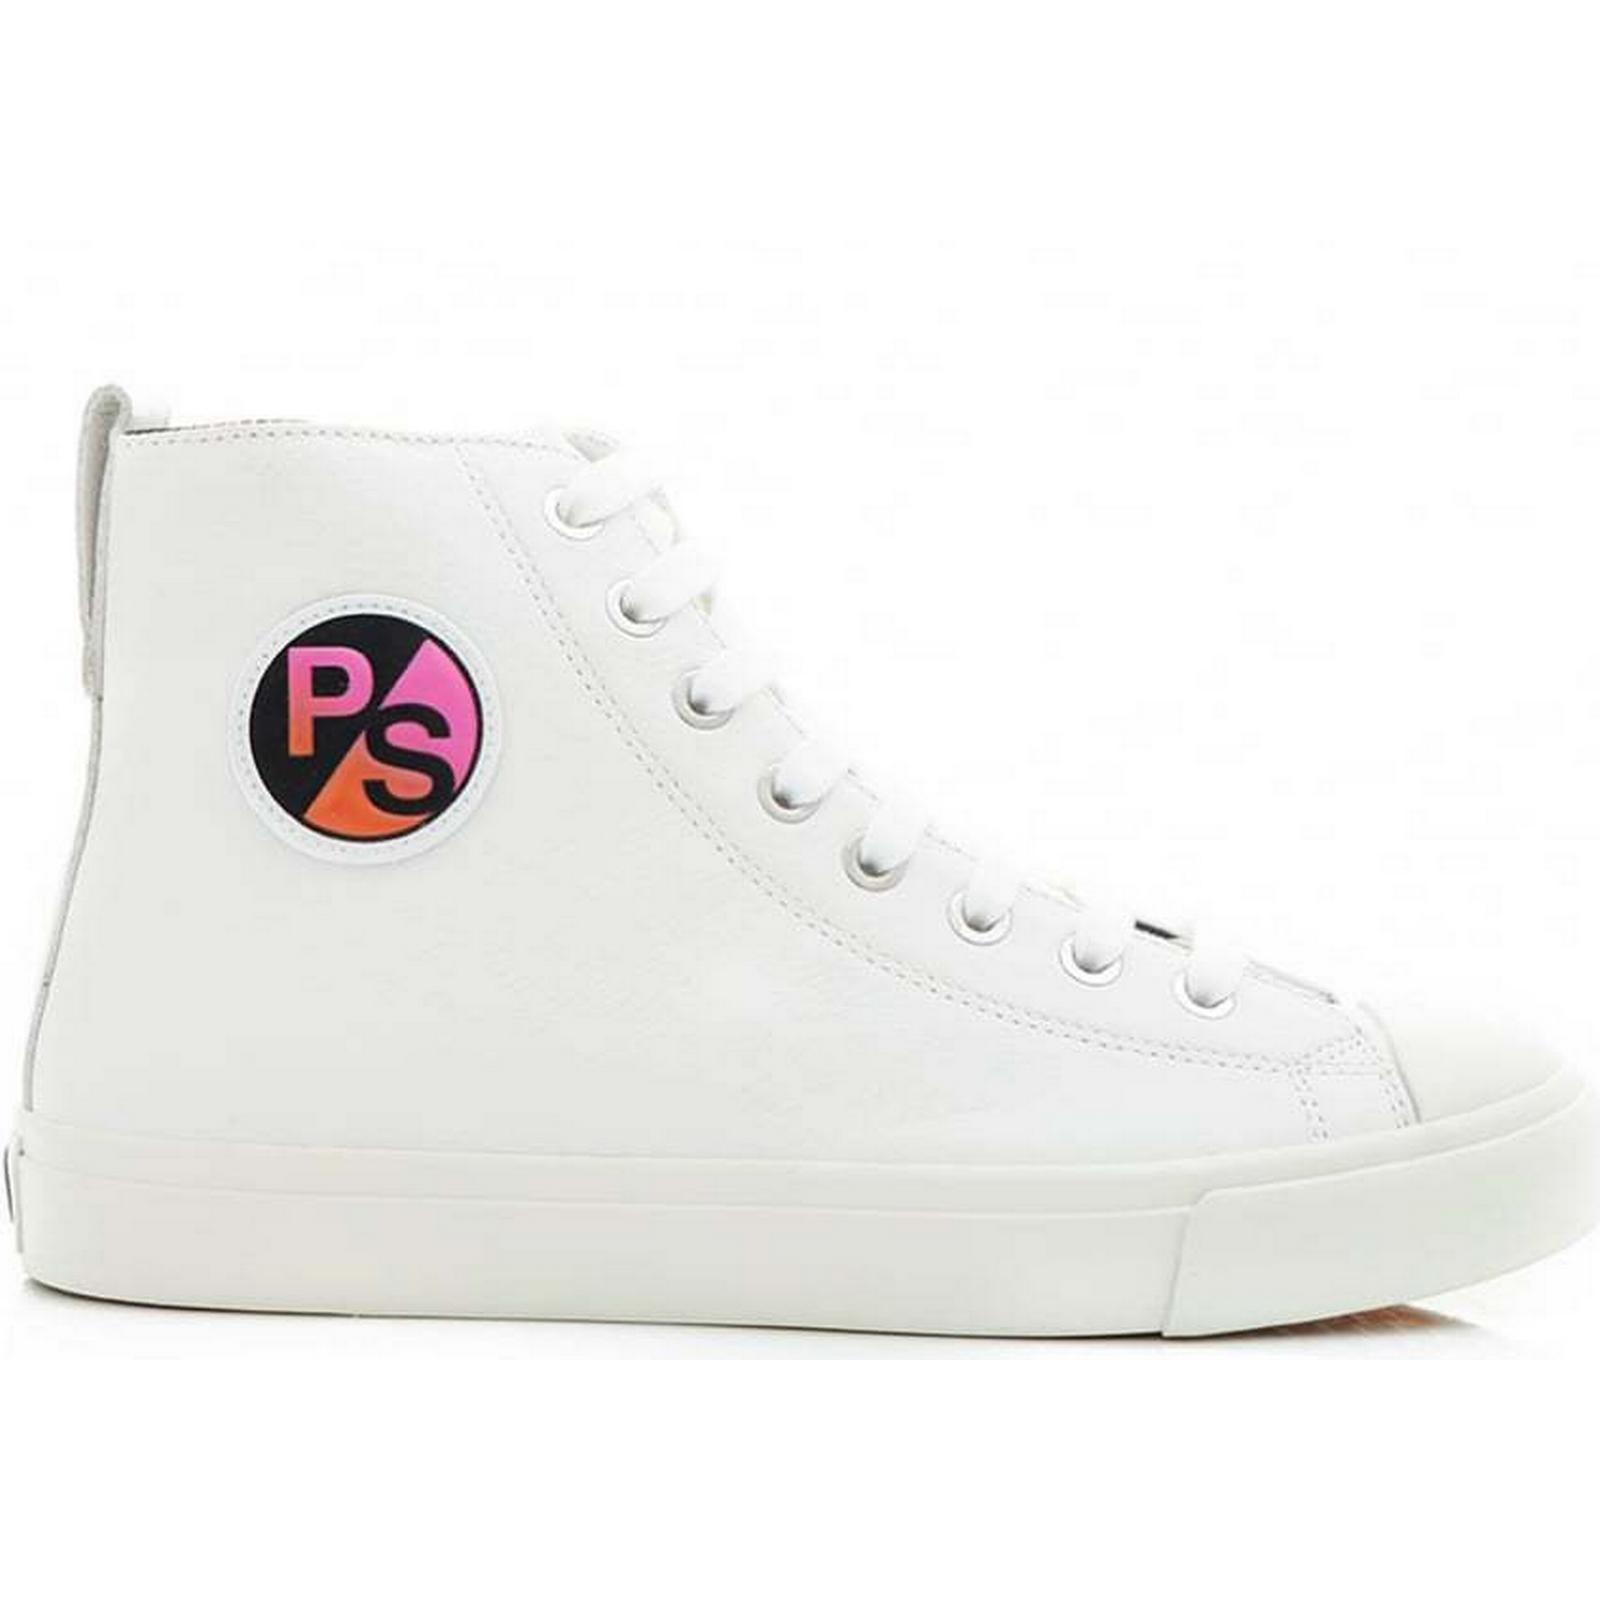 Paul Sneakers Smith Allegra High Top Sneakers Paul Colour: WHITE, Size: 6 4589d3